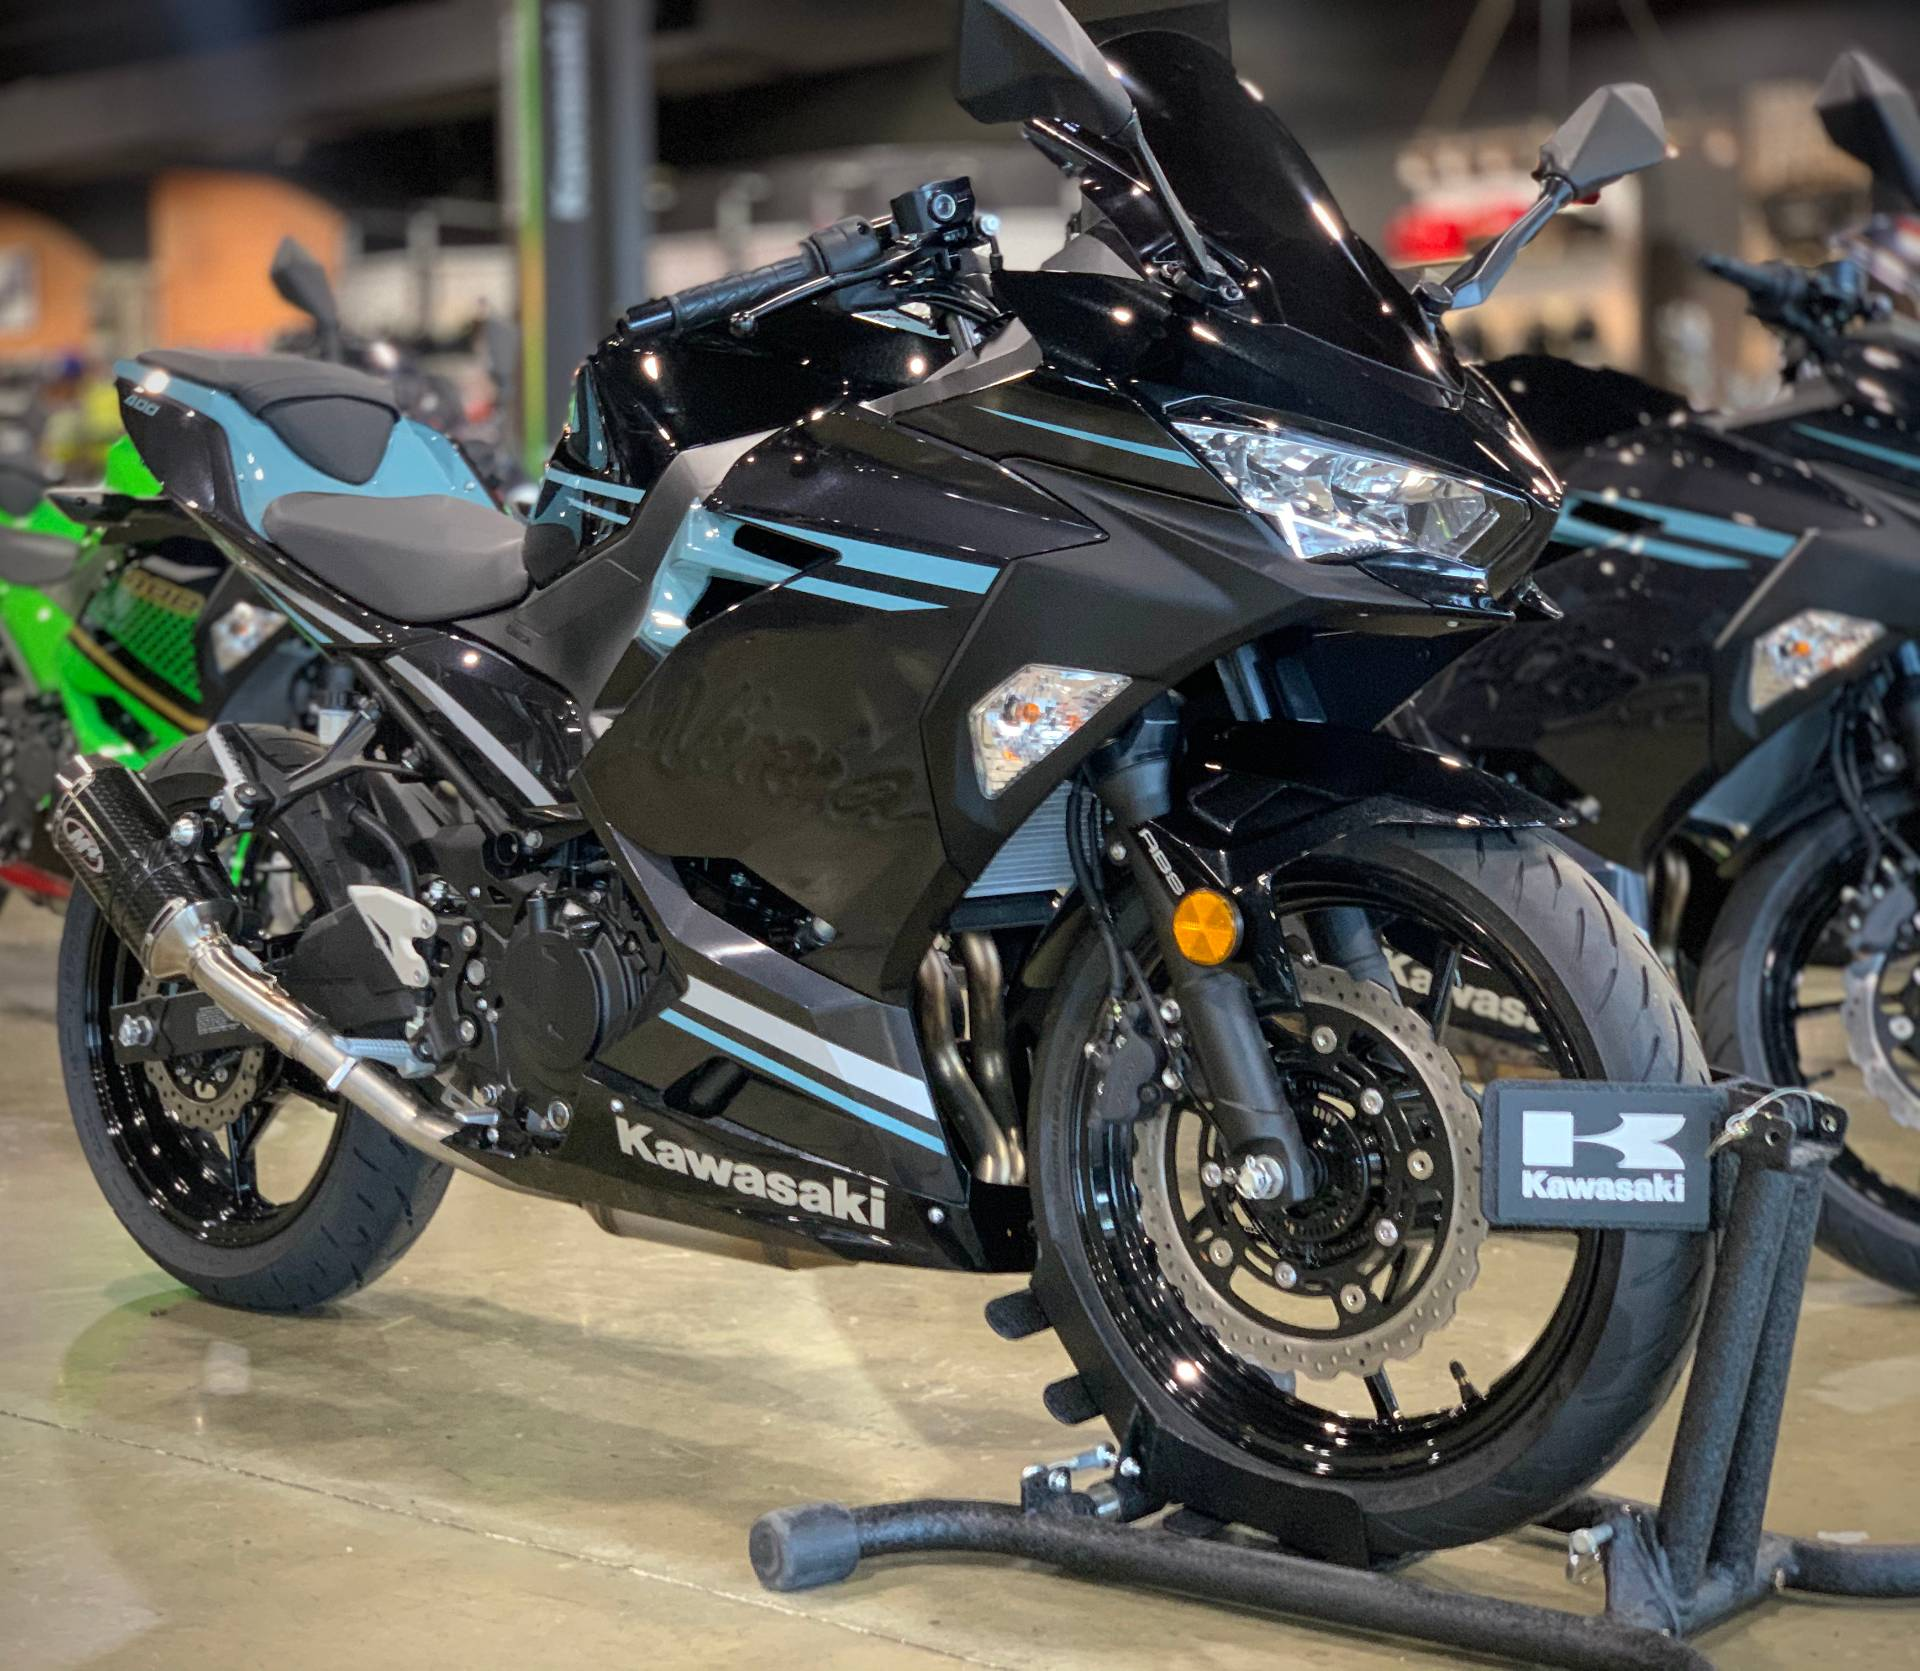 2020 Kawasaki Ninja 400 ABS in Plano, Texas - Photo 1